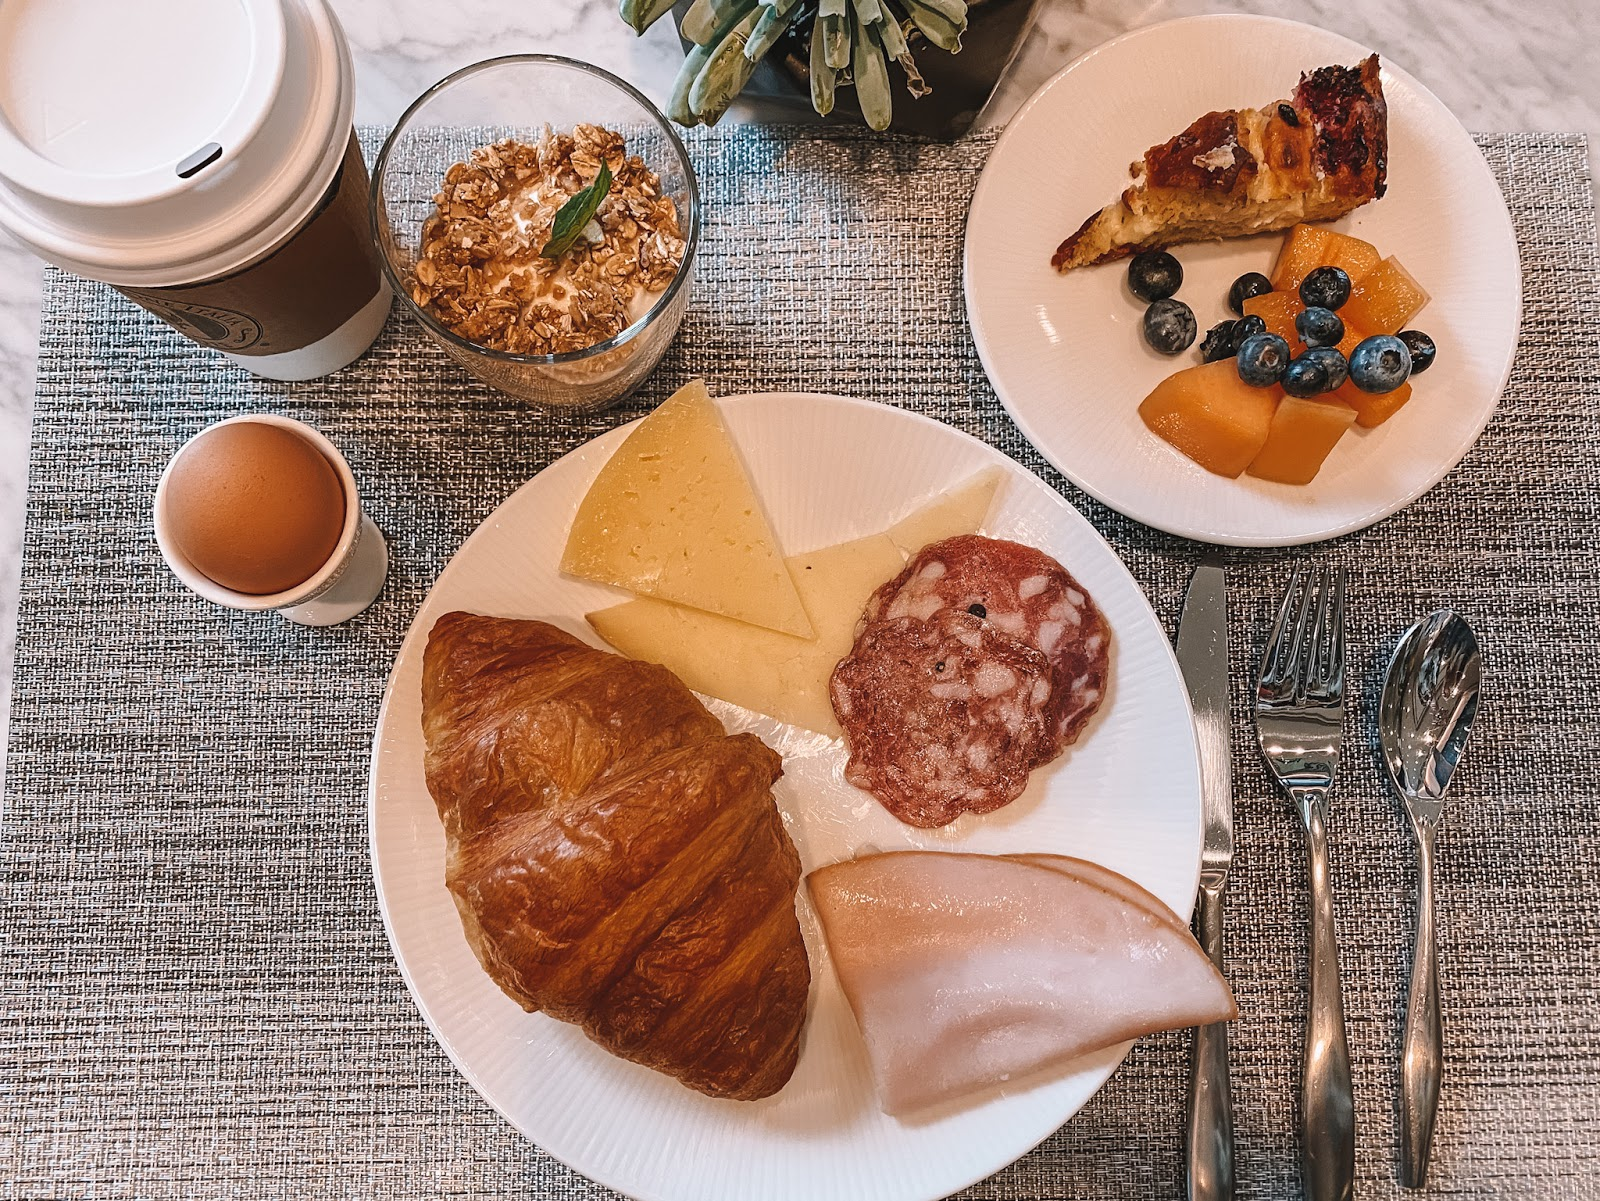 European Breakfast buffet at the AC Hotel by Marriott in Frisco, Texas